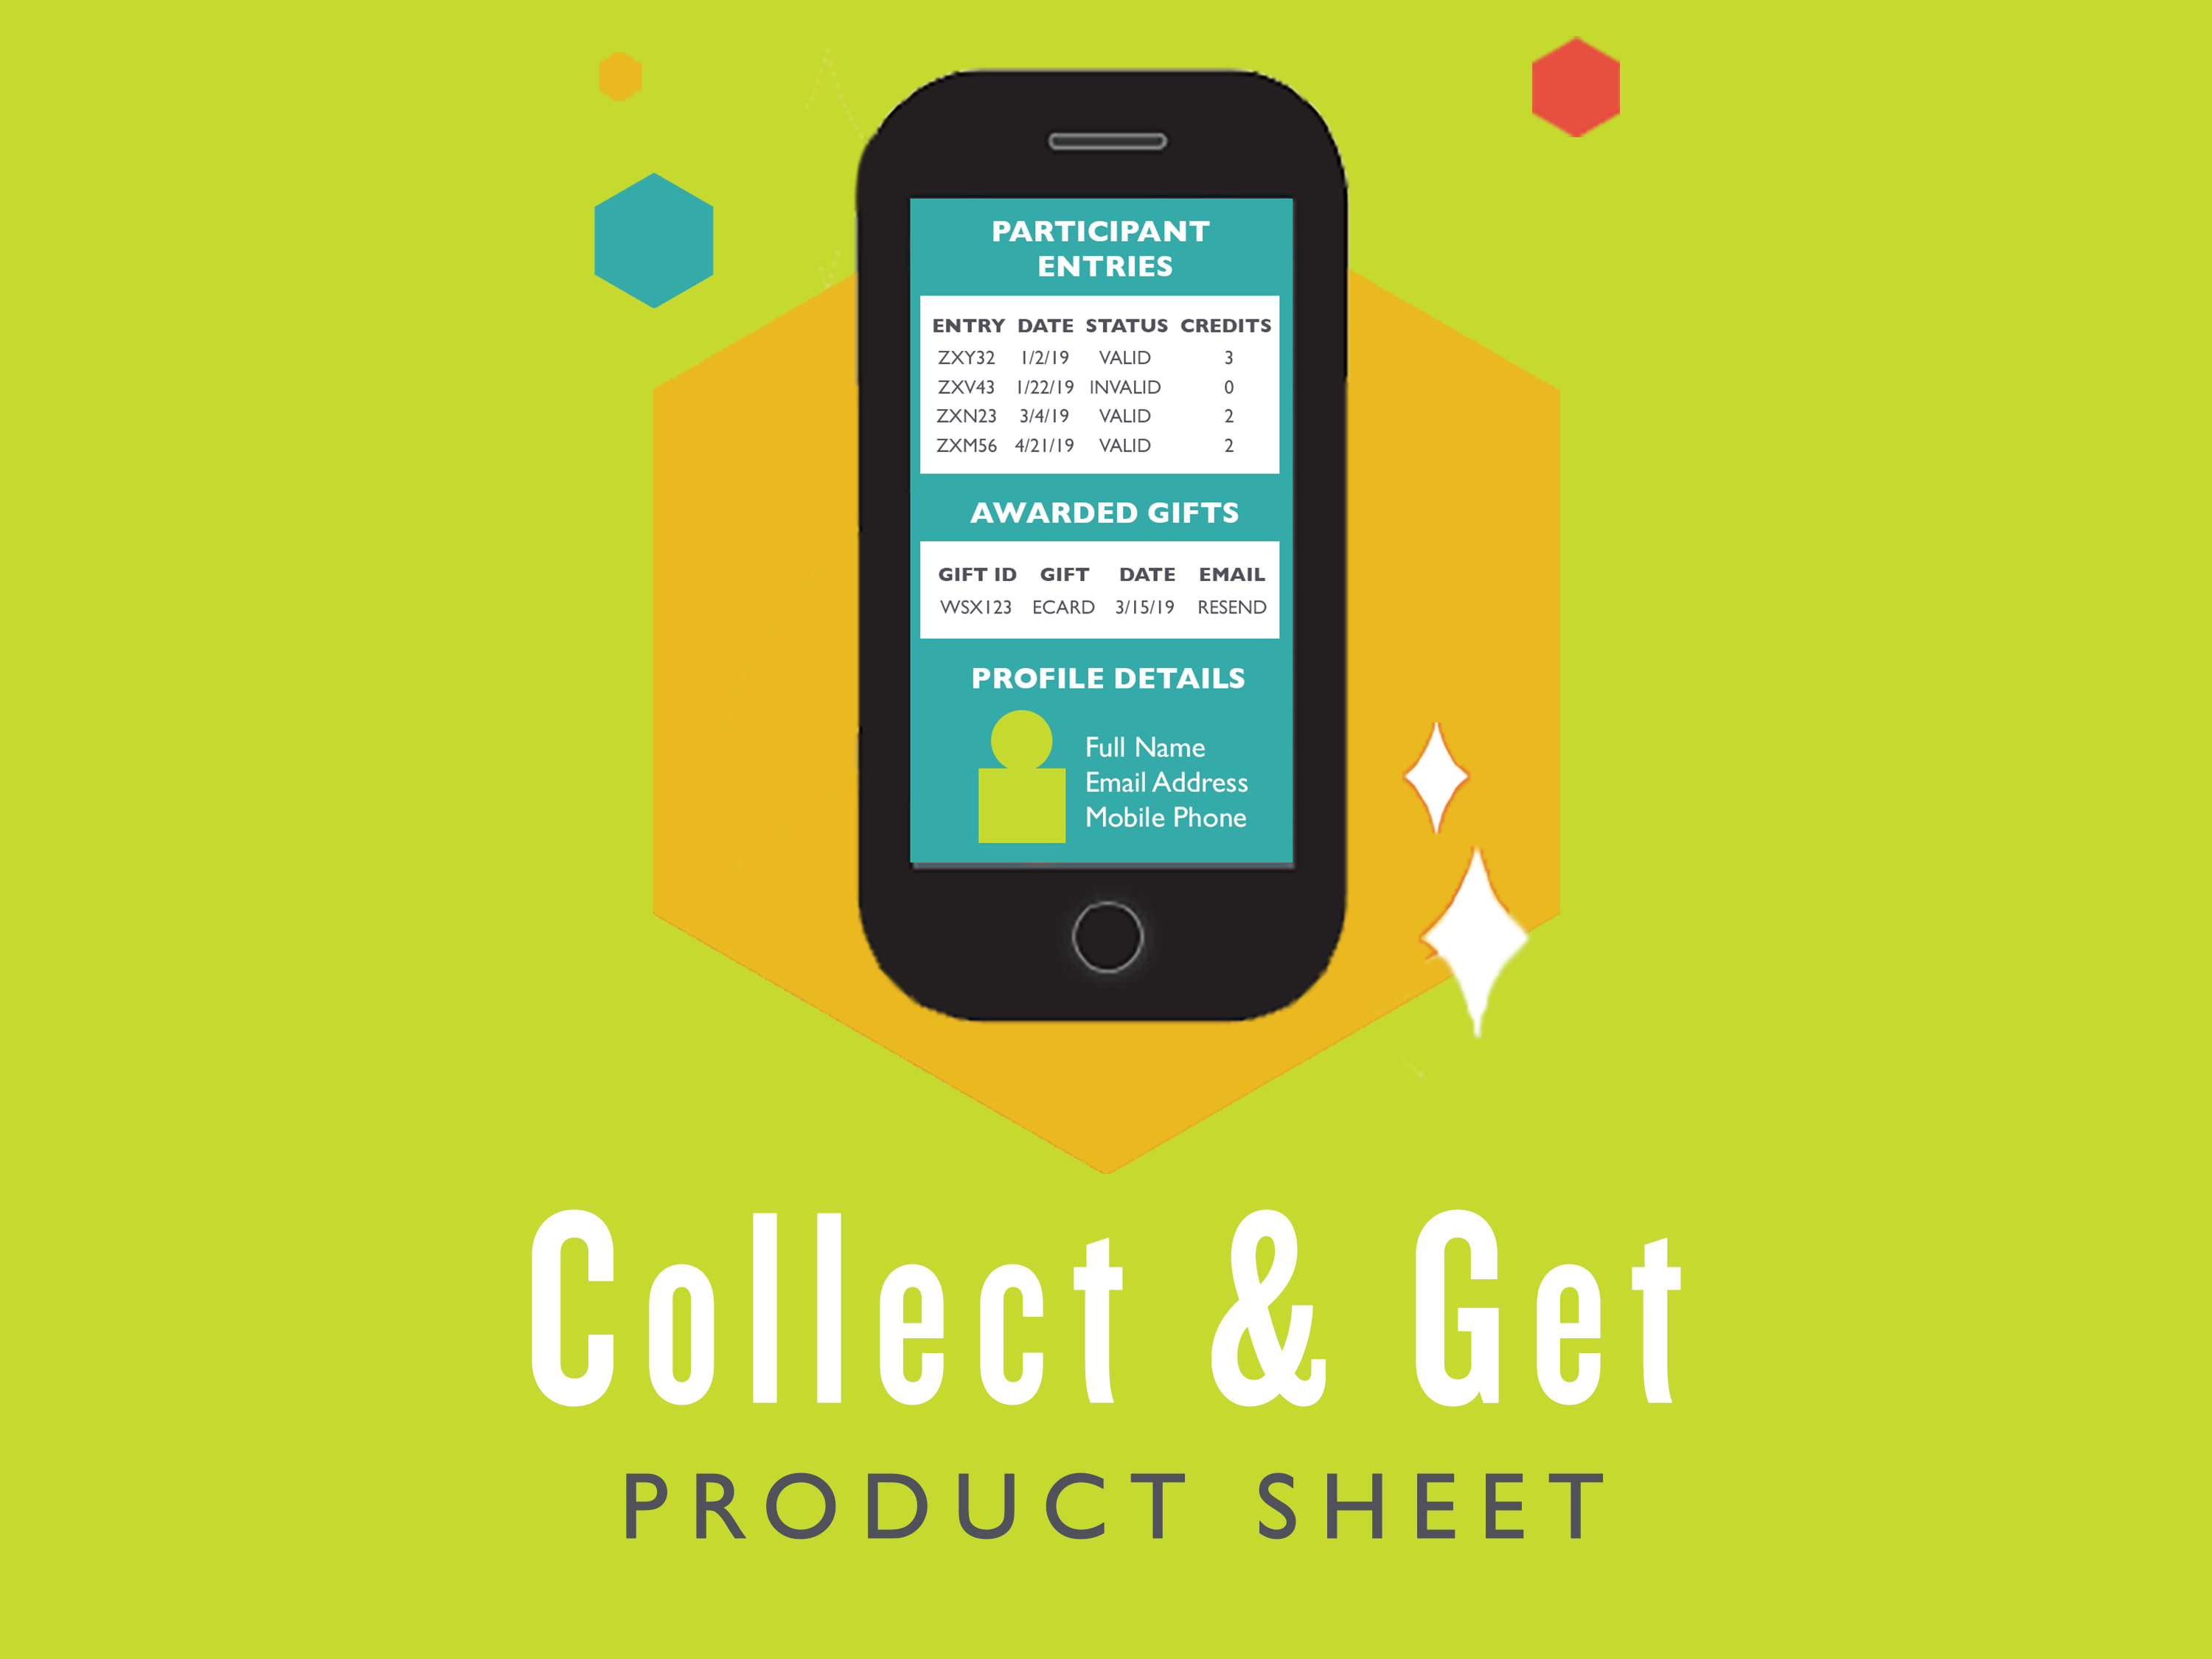 Collect & Get Product Sheet